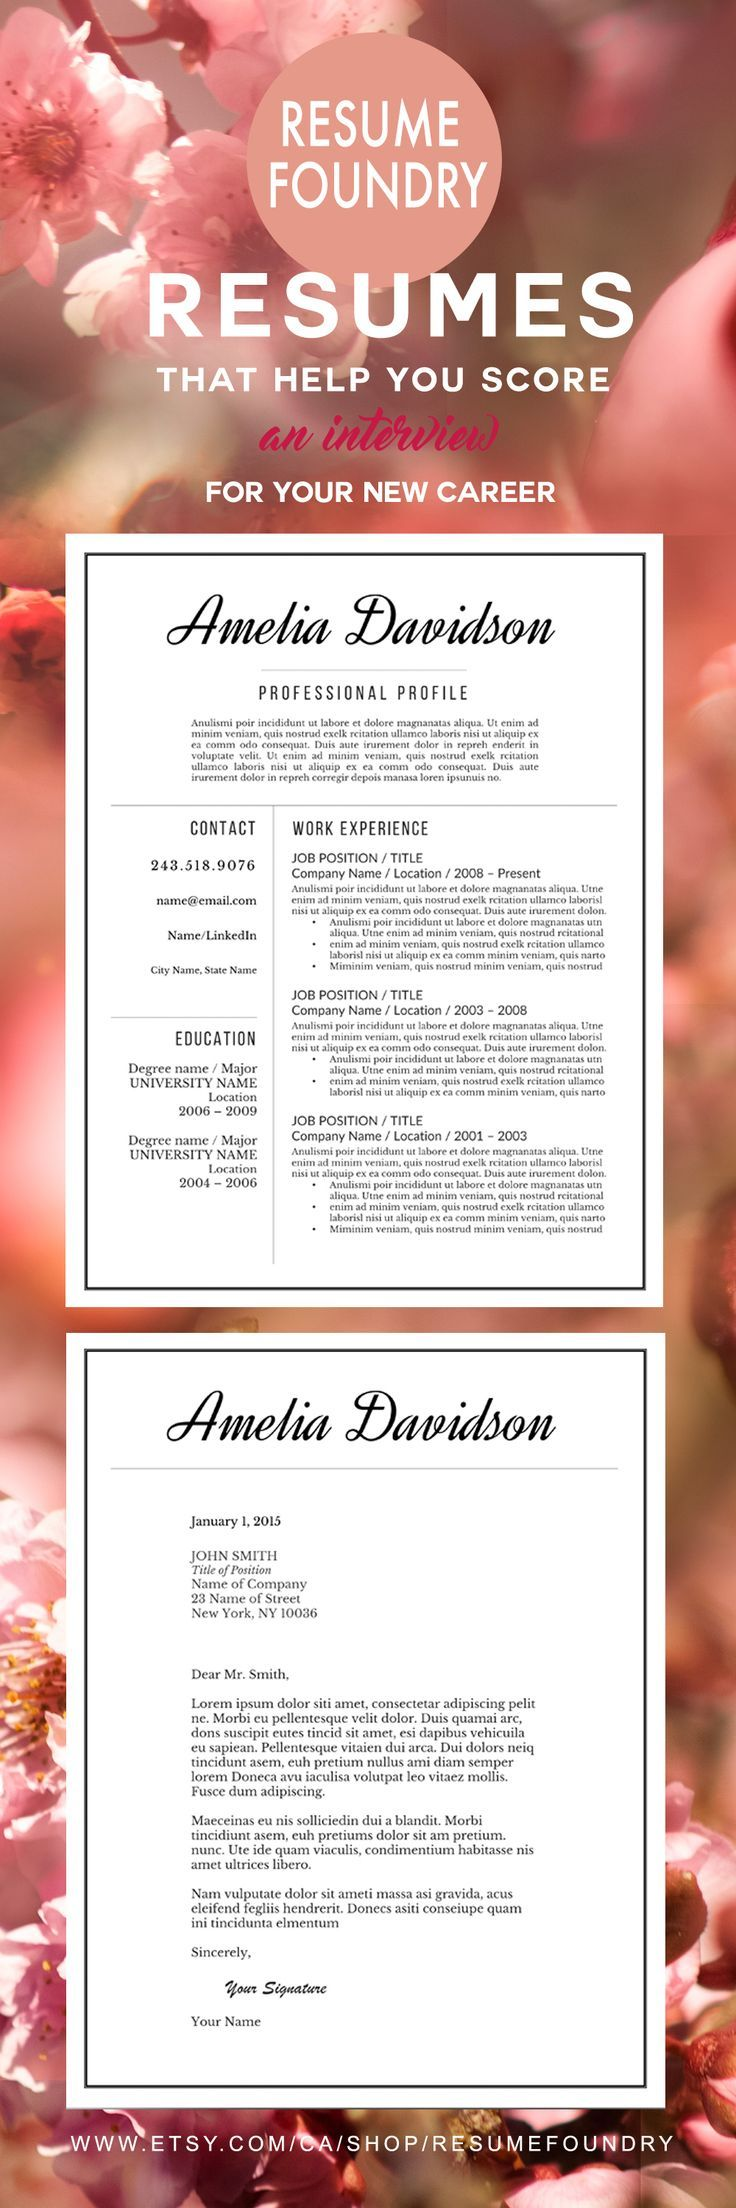 Beautiful resume template from Resume Foundry 14